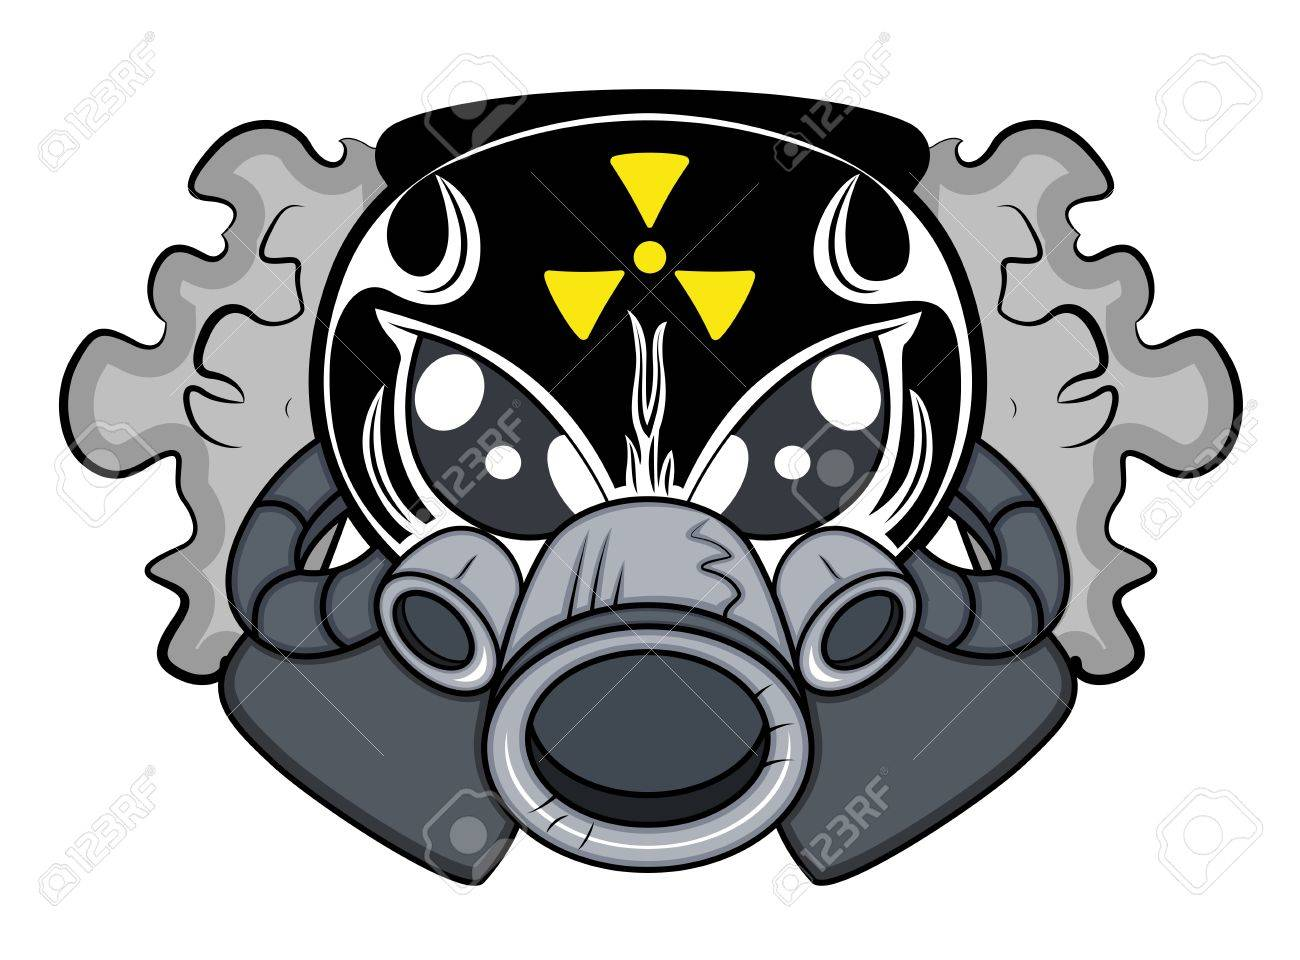 Toxic Mascot Tattoo Vector Stock Vector - 15759264